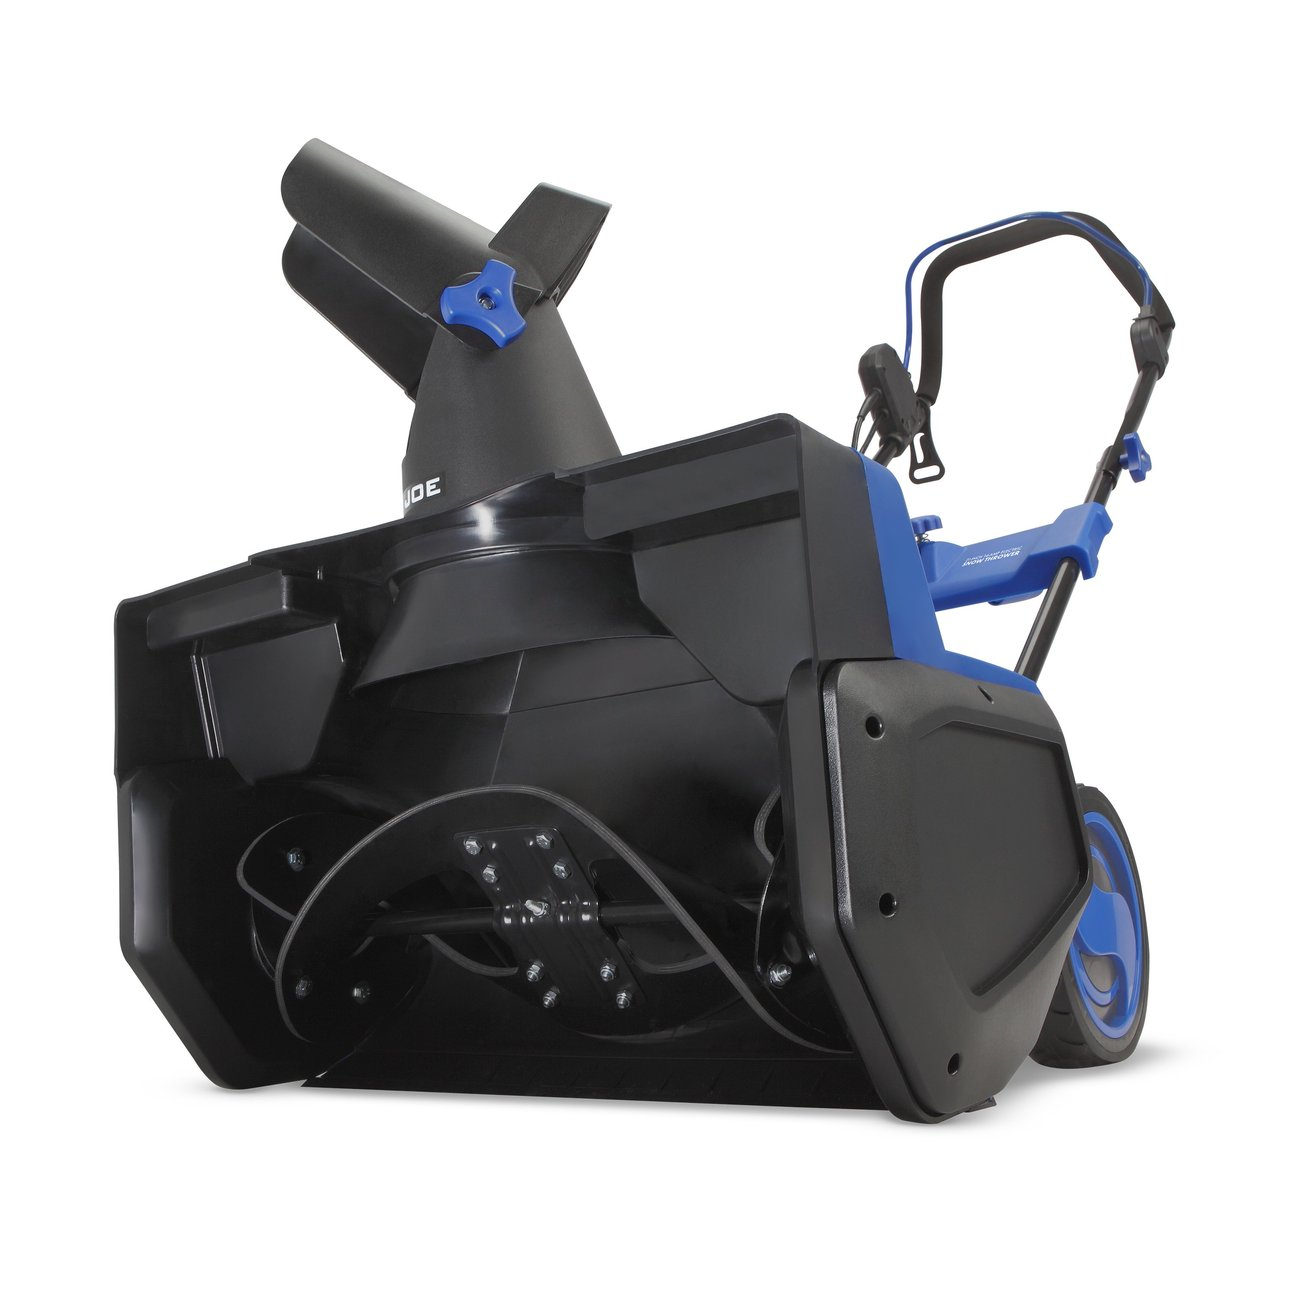 Snow Joe SJ624E Electric Single Stage Snow Thrower | 21-Inch | 14 Amp Motor